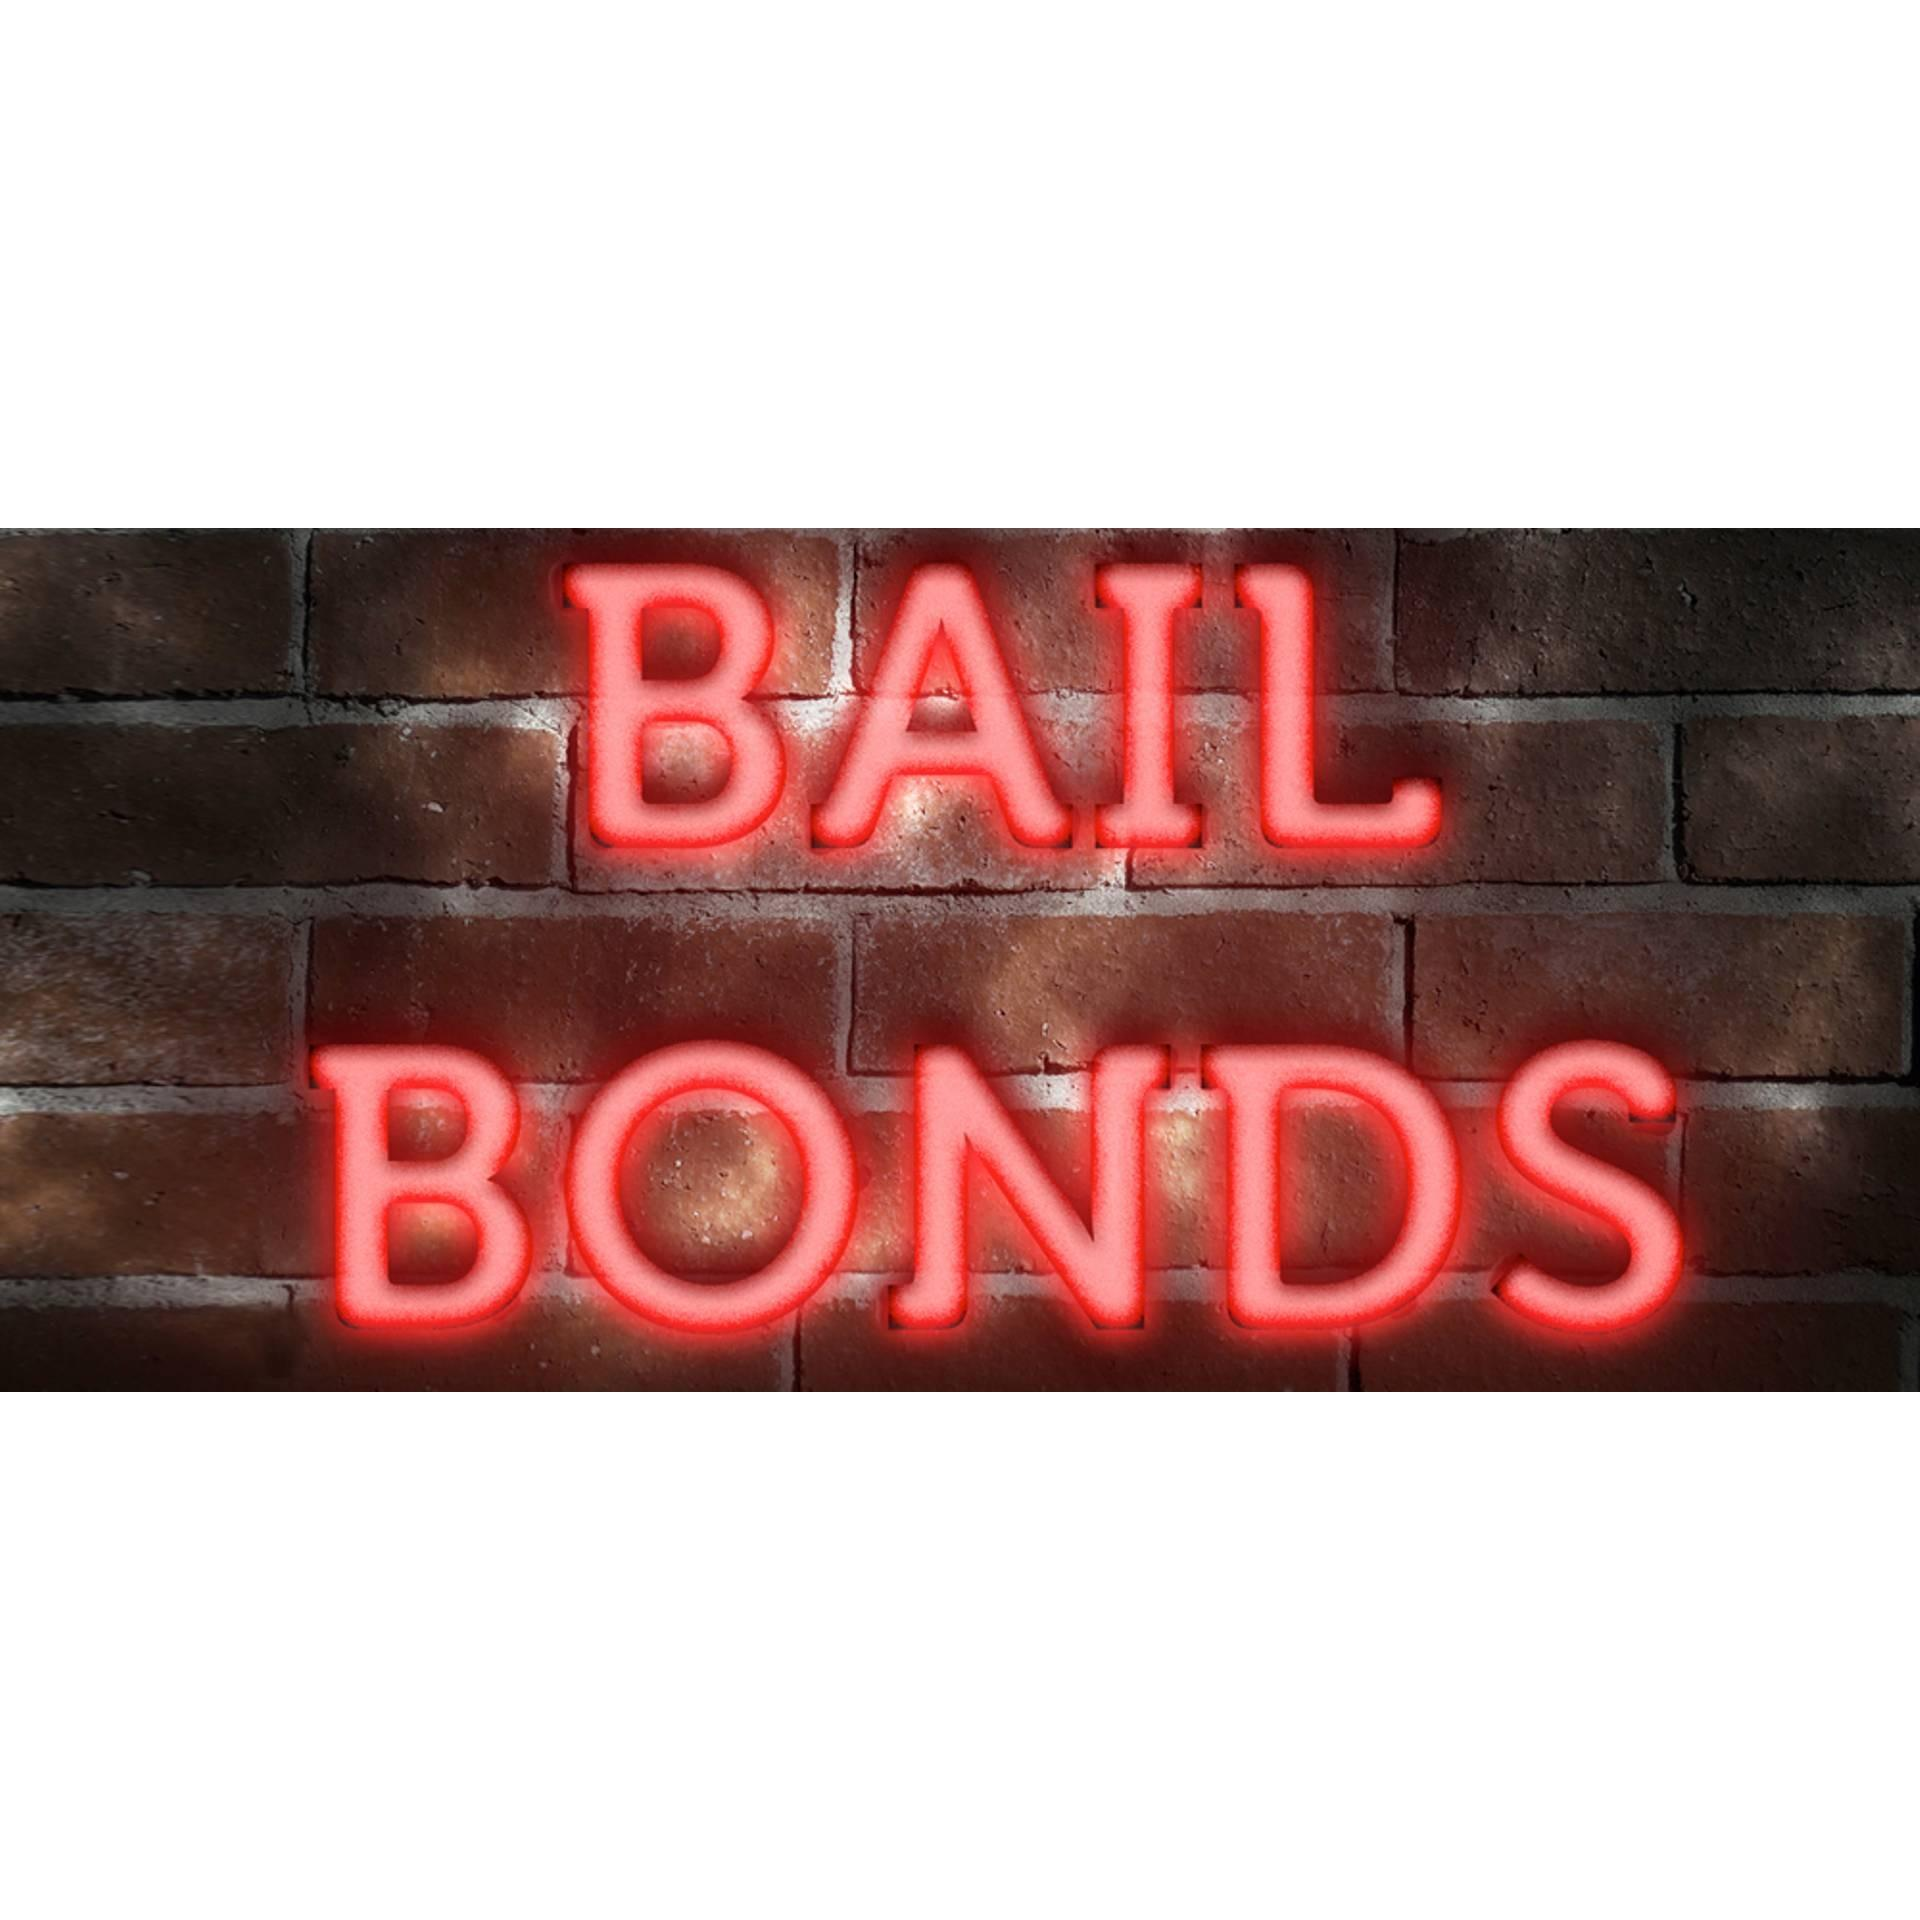 AZK Bail Bonds - Daytona Beach, FL 32118 - (321)438-8565 | ShowMeLocal.com